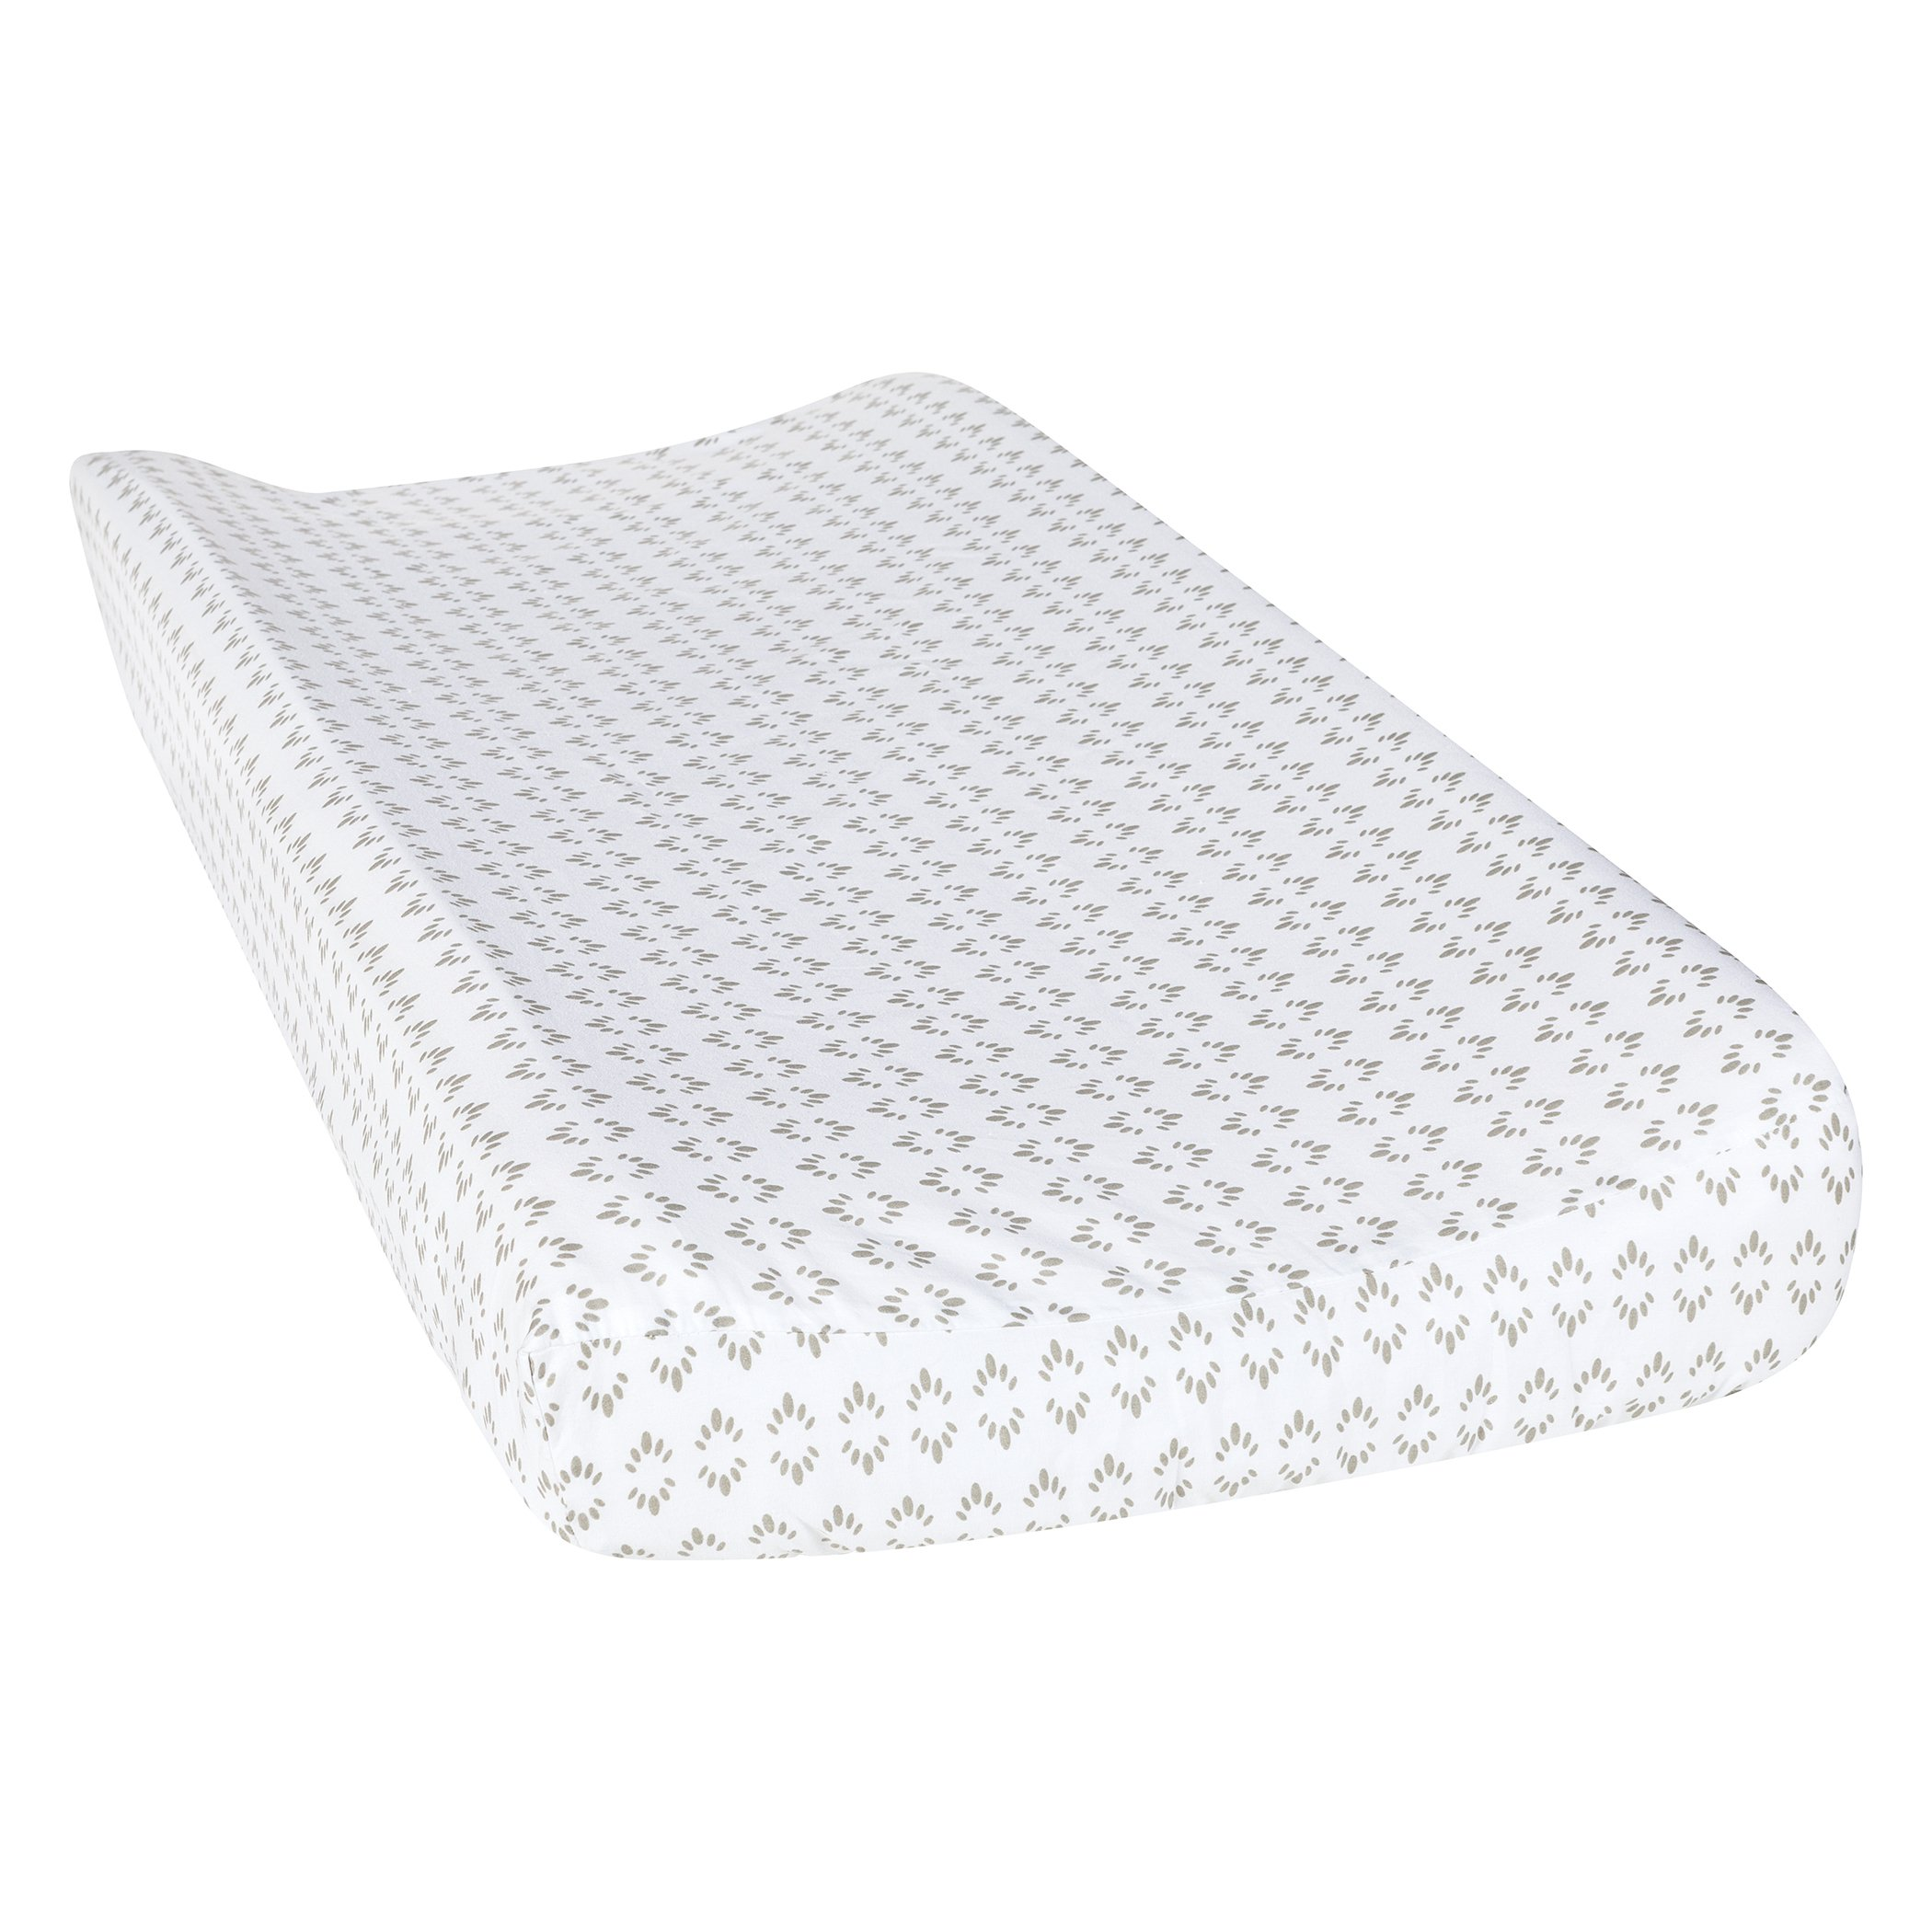 Trend Lab Art Deco Burst Changing Pad Cover, Gray/White